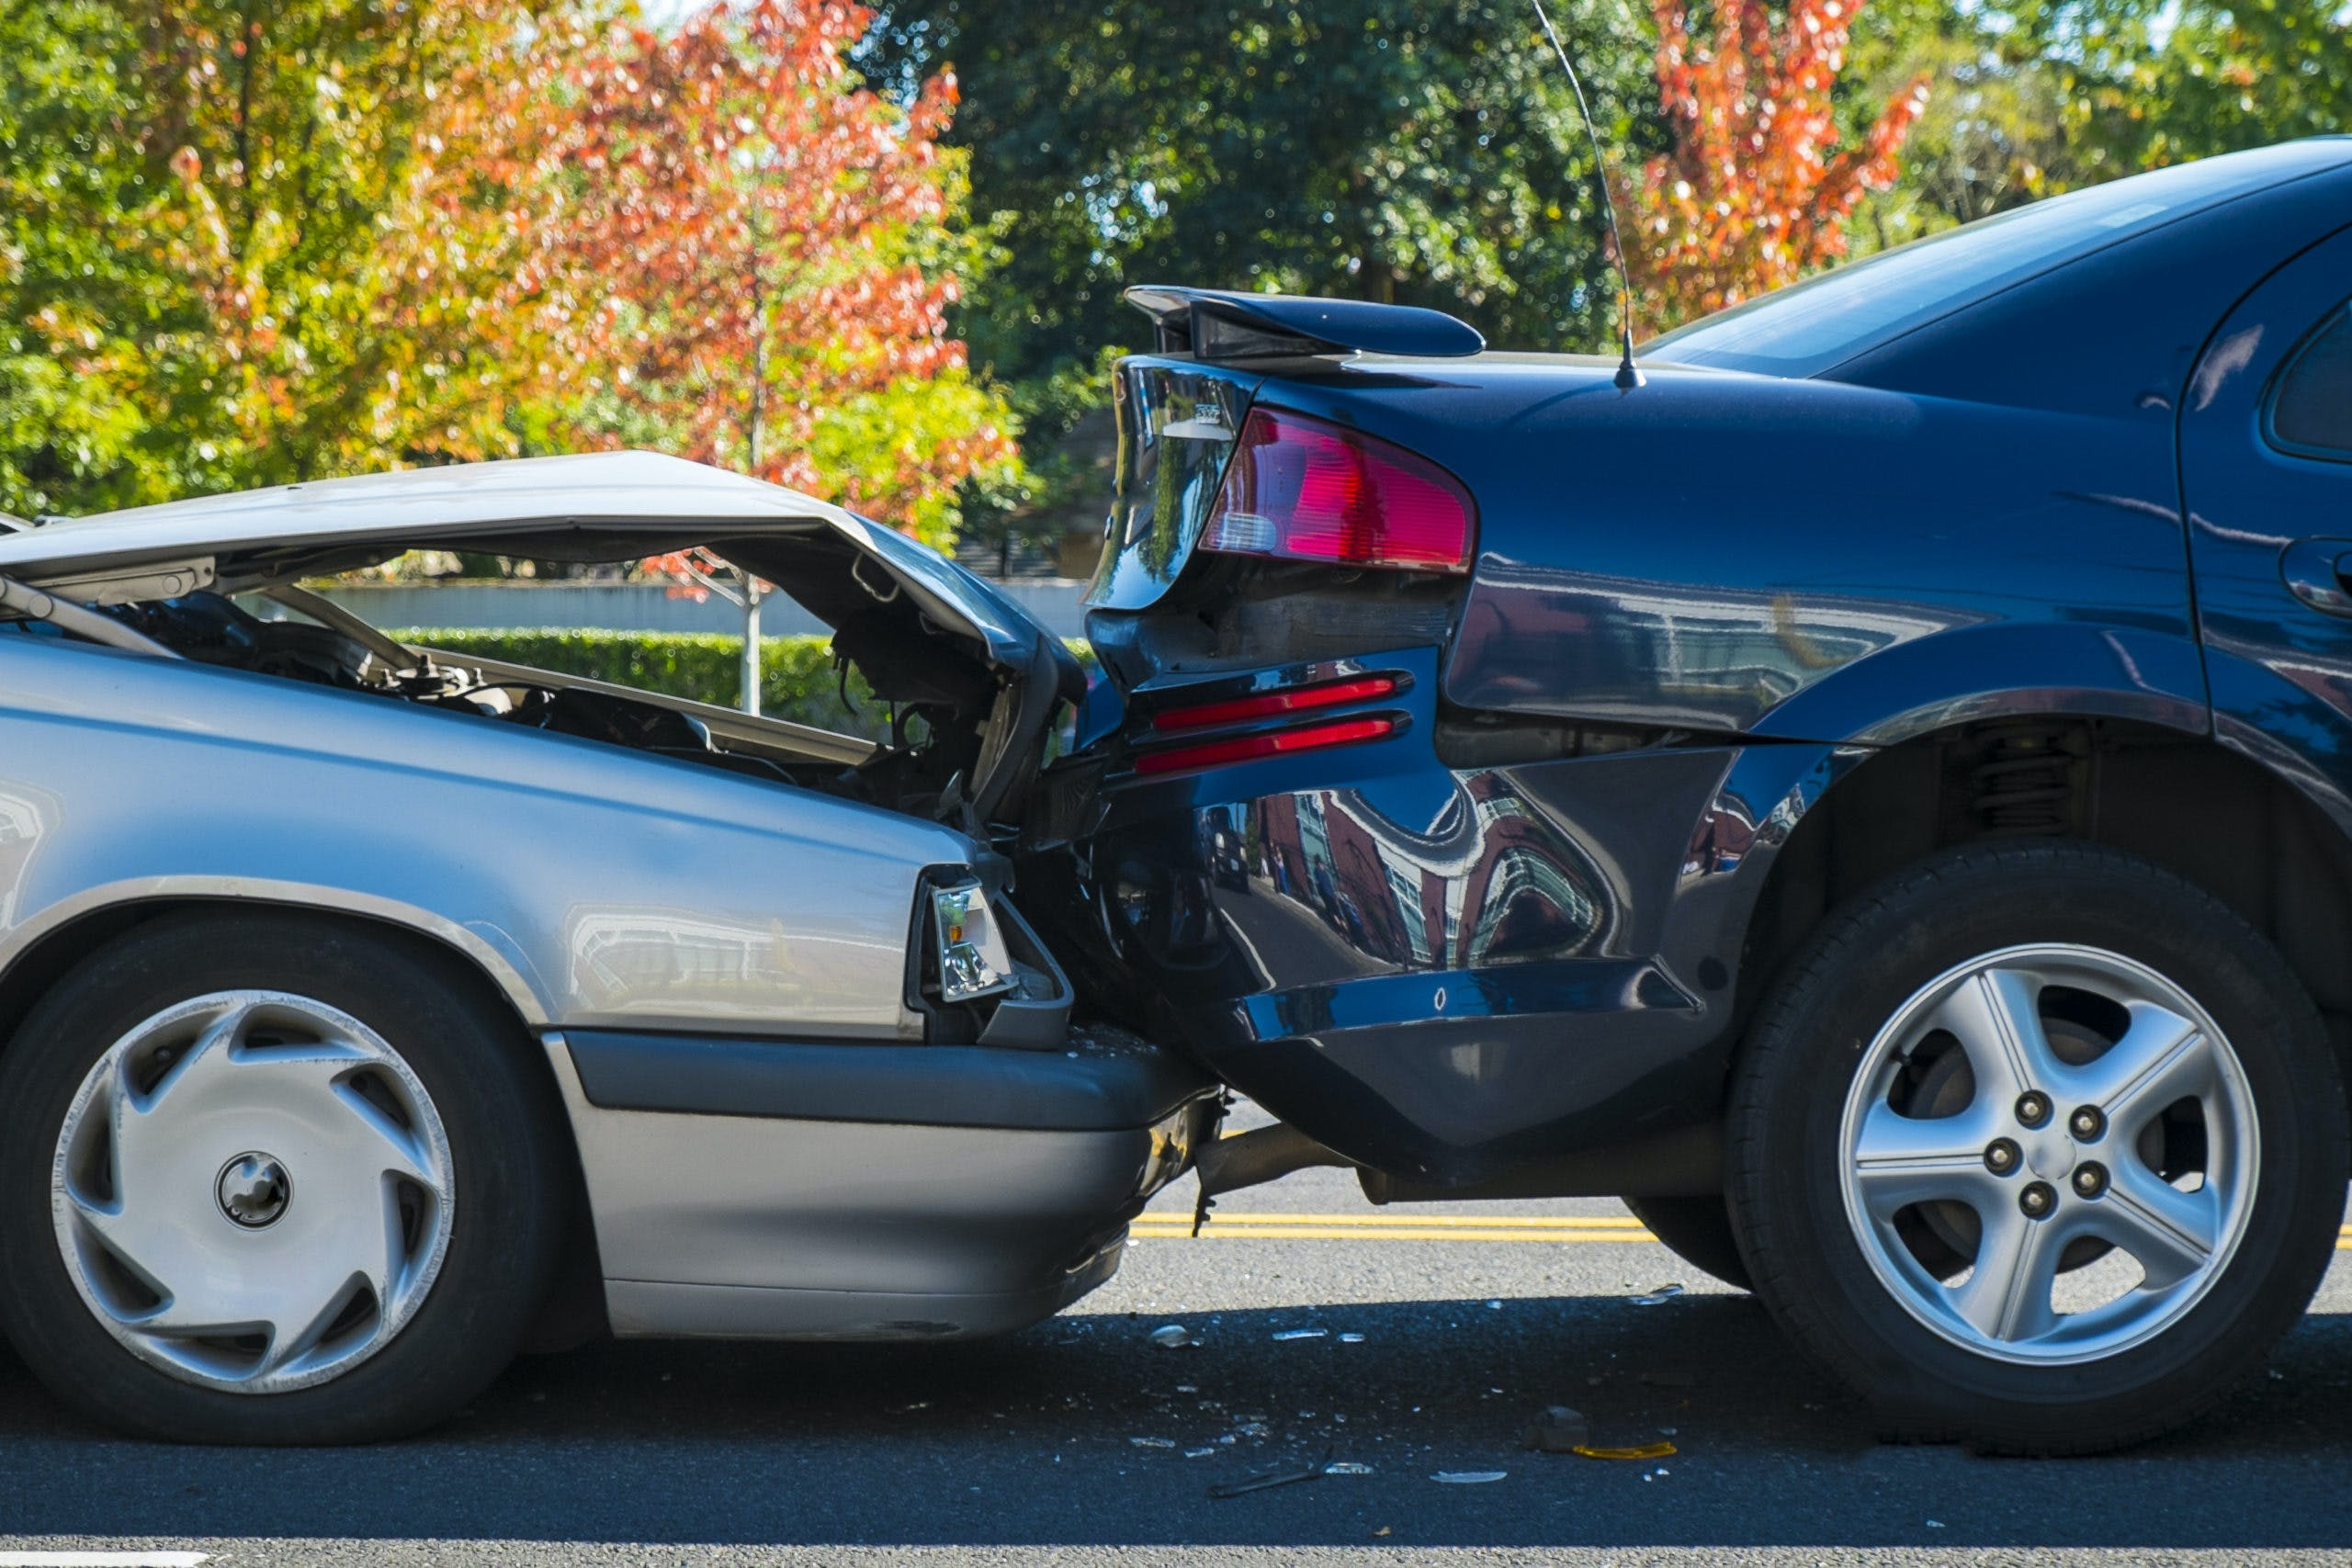 uto accident involving two cars